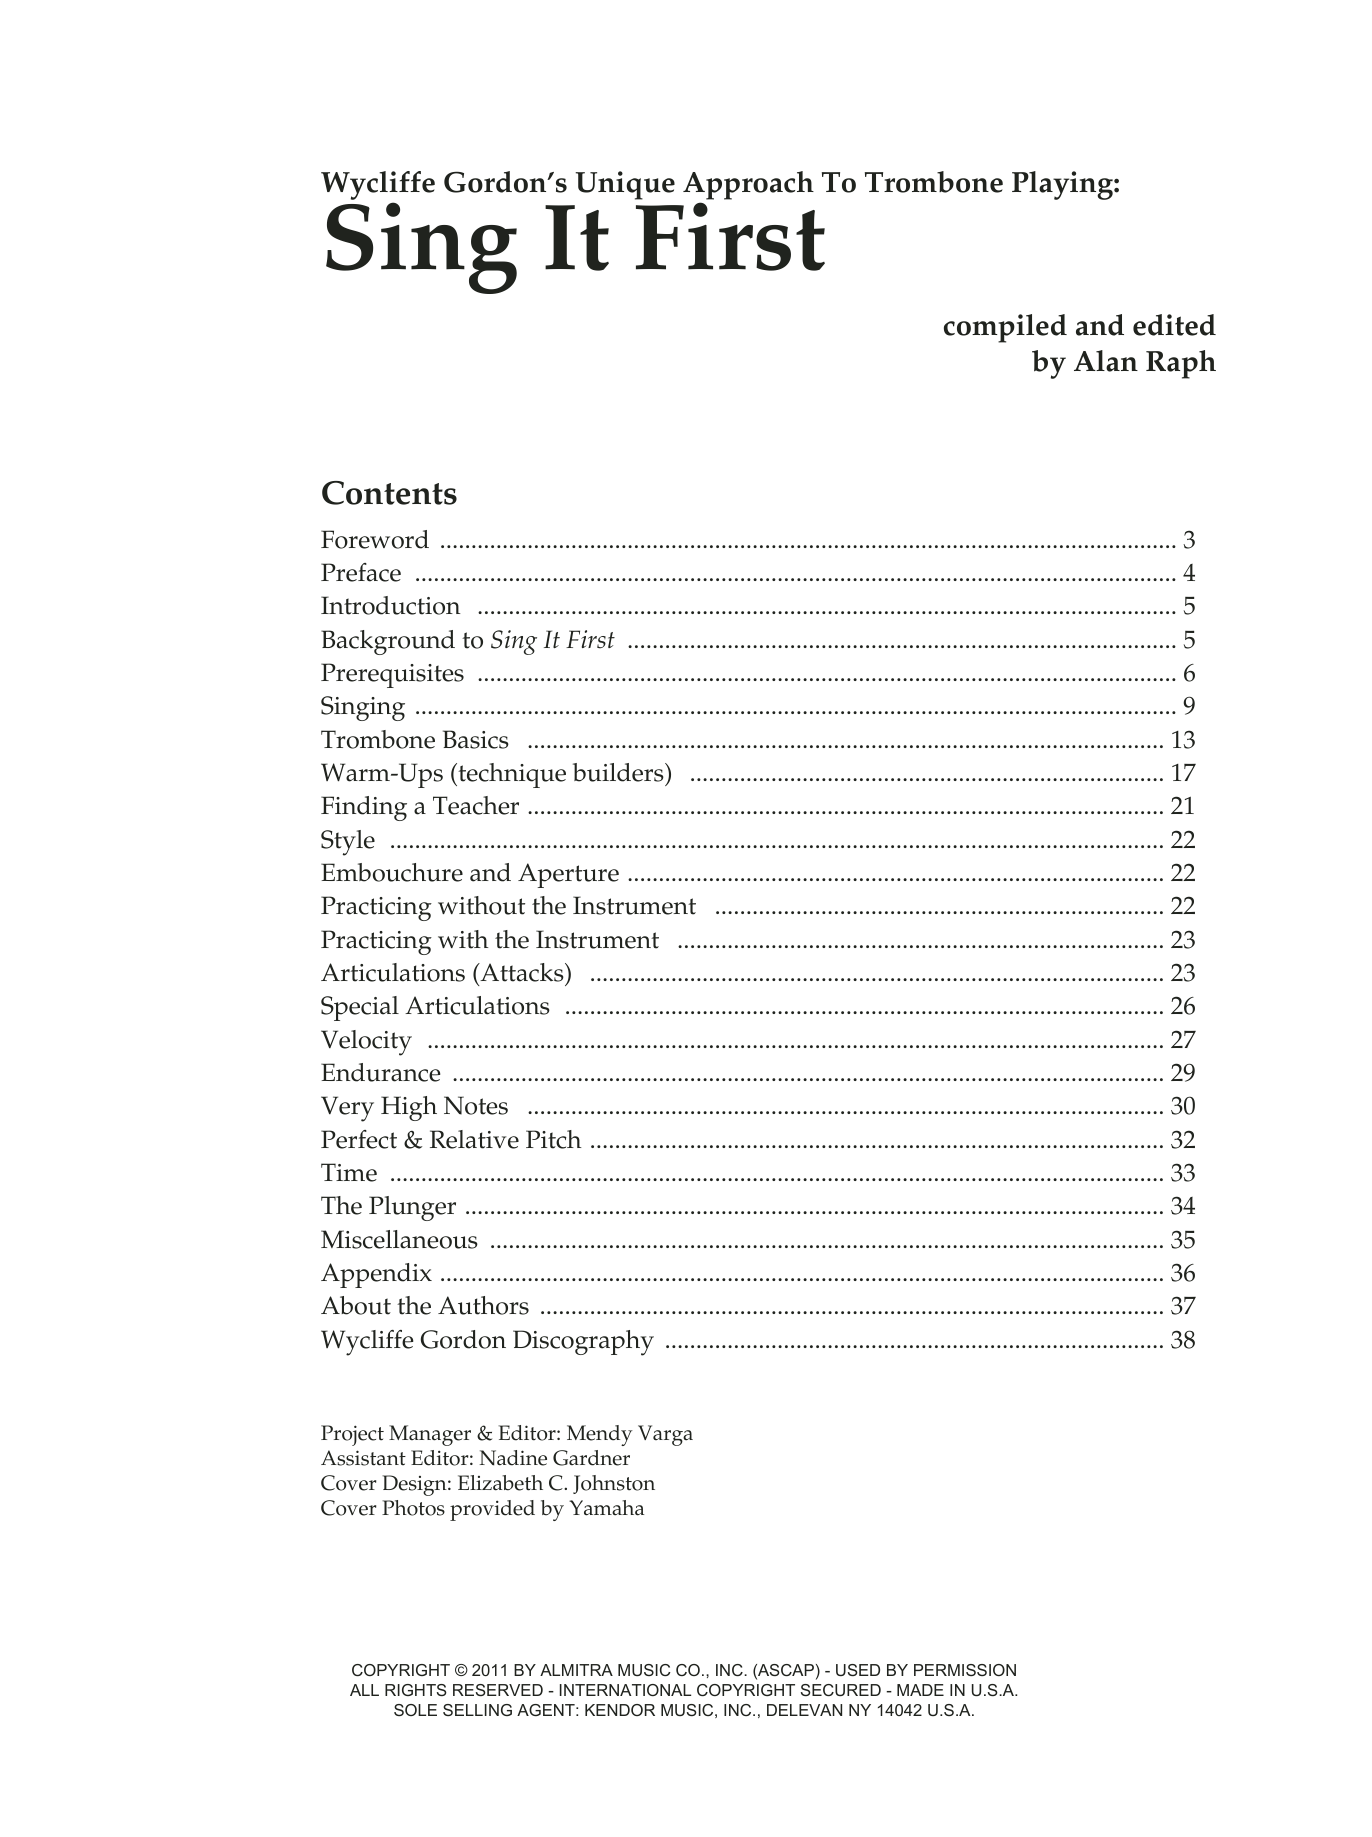 Wycliffe Gordon Sing It First (Wycliffe Gordon's Unique Approach To Trombone Playing) sheet music notes and chords. Download Printable PDF.